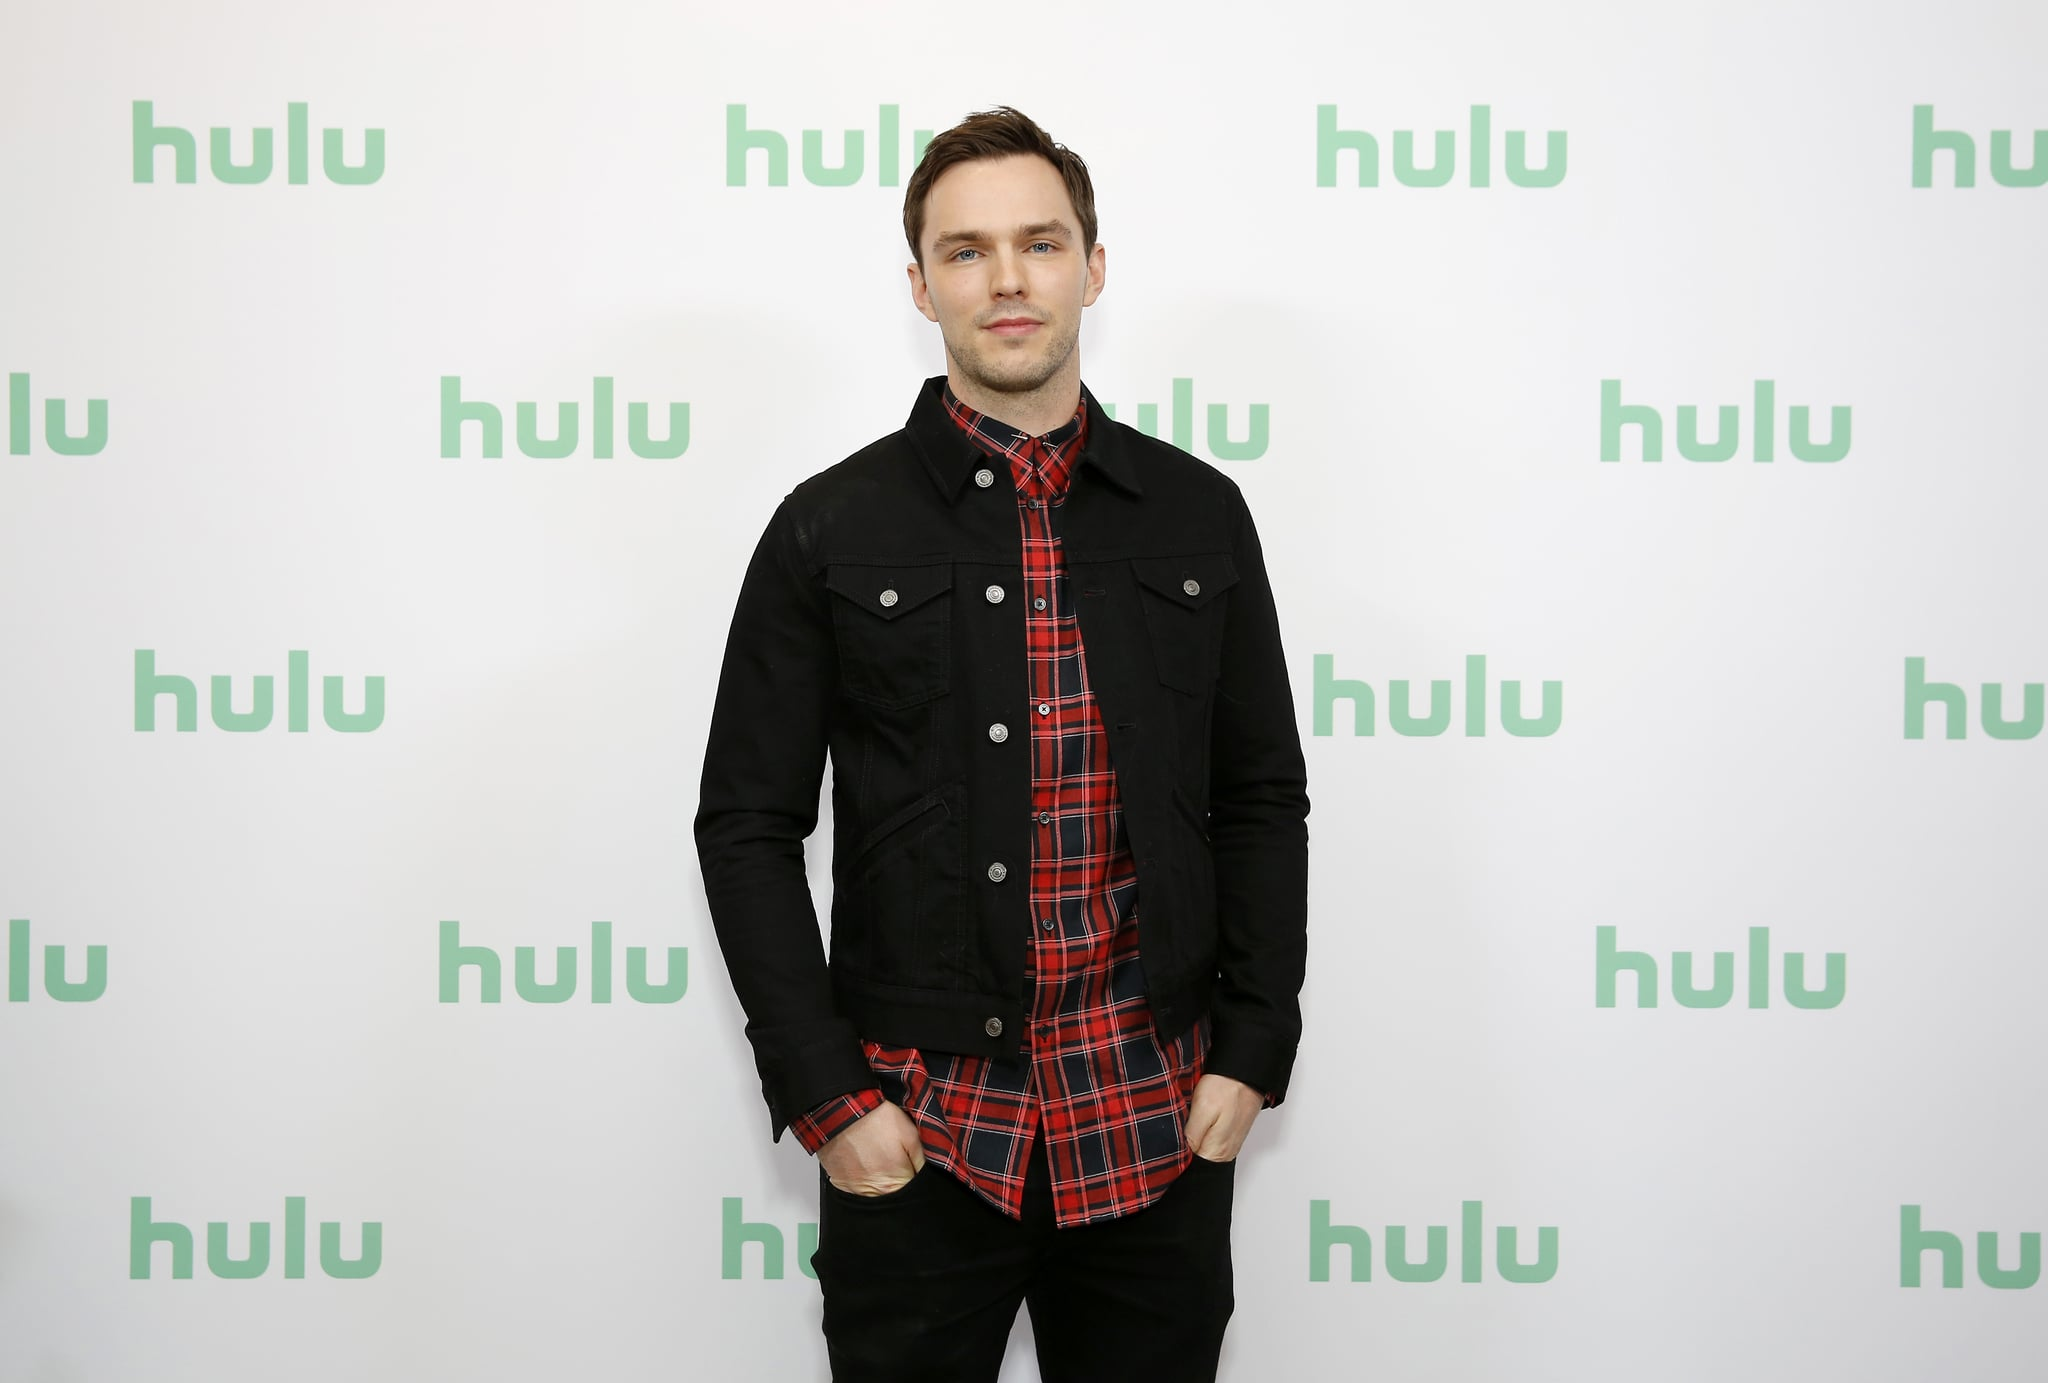 PASADENA, CALIFORNIA - JANUARY 17: Nicholas Hoult attends the Hulu Panel at Winter TCA 2020 at The Langham Huntington, Pasadena on January 17, 2020 in Pasadena, California. (Photo by Rachel Murray/Getty Images for Hulu)